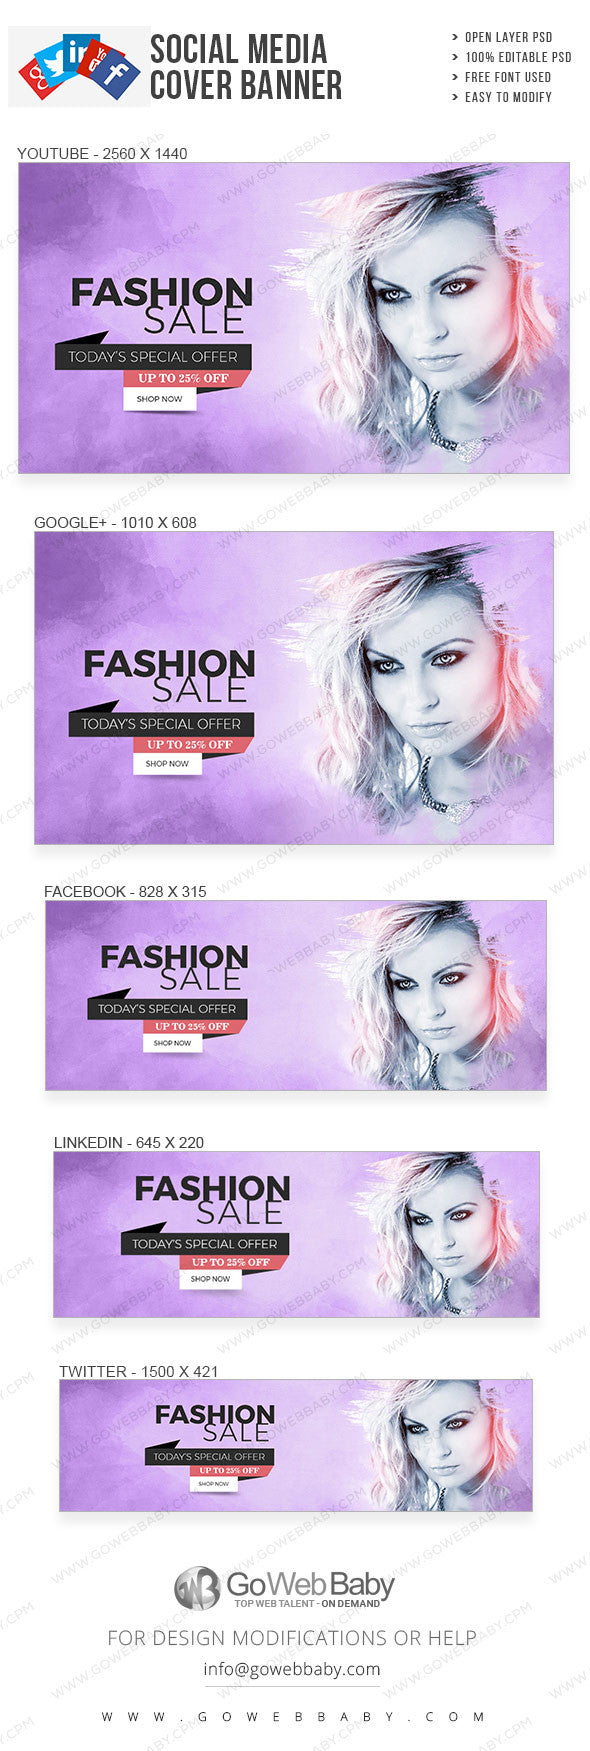 Social Media Cover Banner - Women's fashion for website marketing